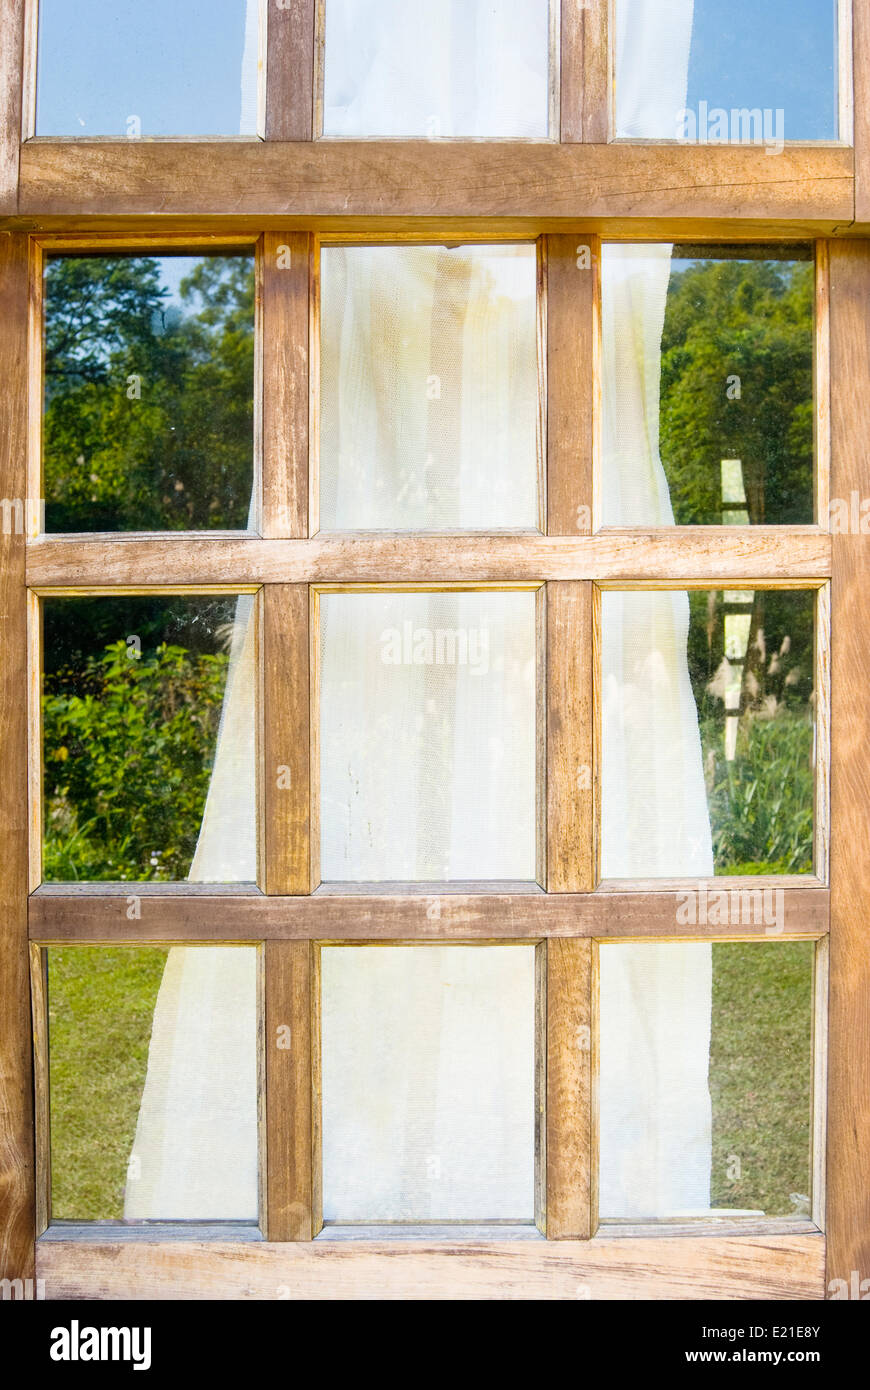 Old wooden windows with drape - Stock Image